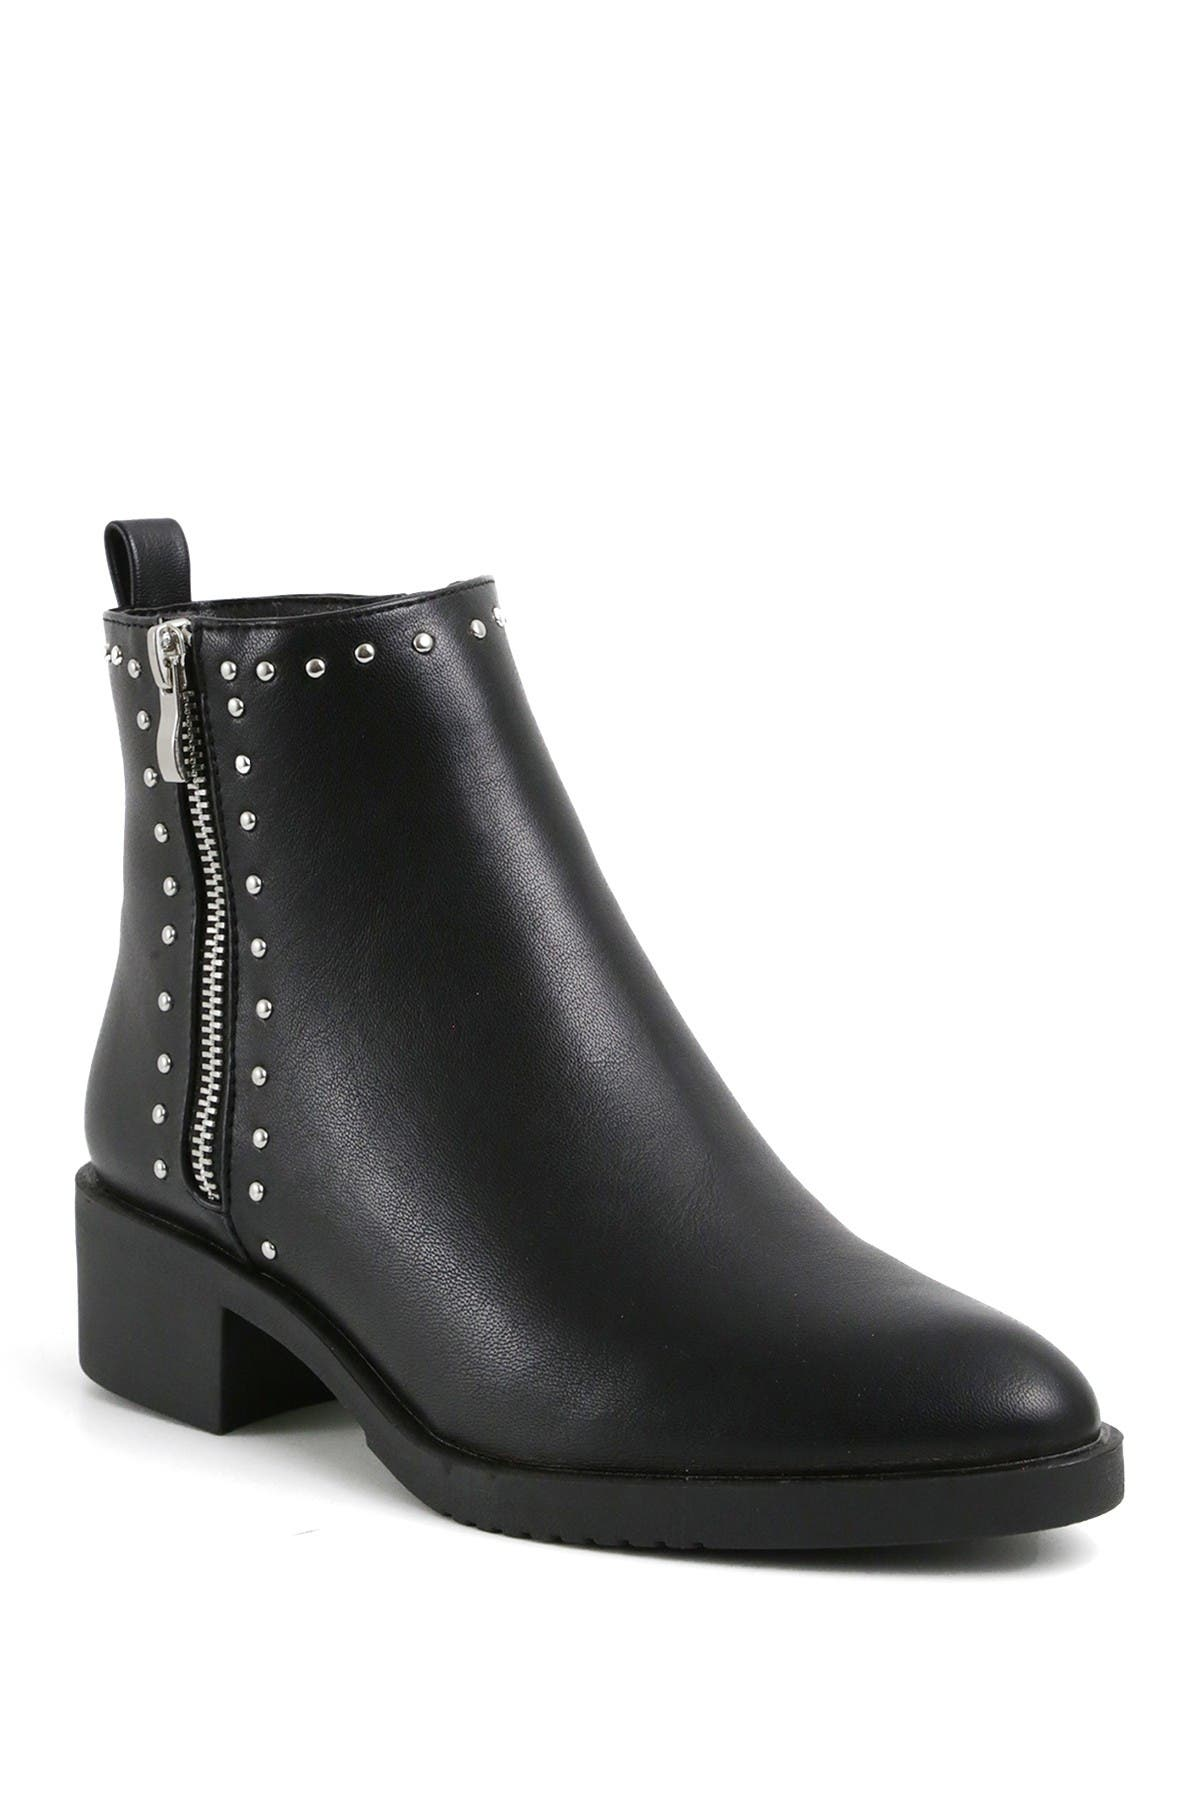 Image of Catherine Catherine Malandrino Naroon Pointed Toe Vegan Leather Bootie